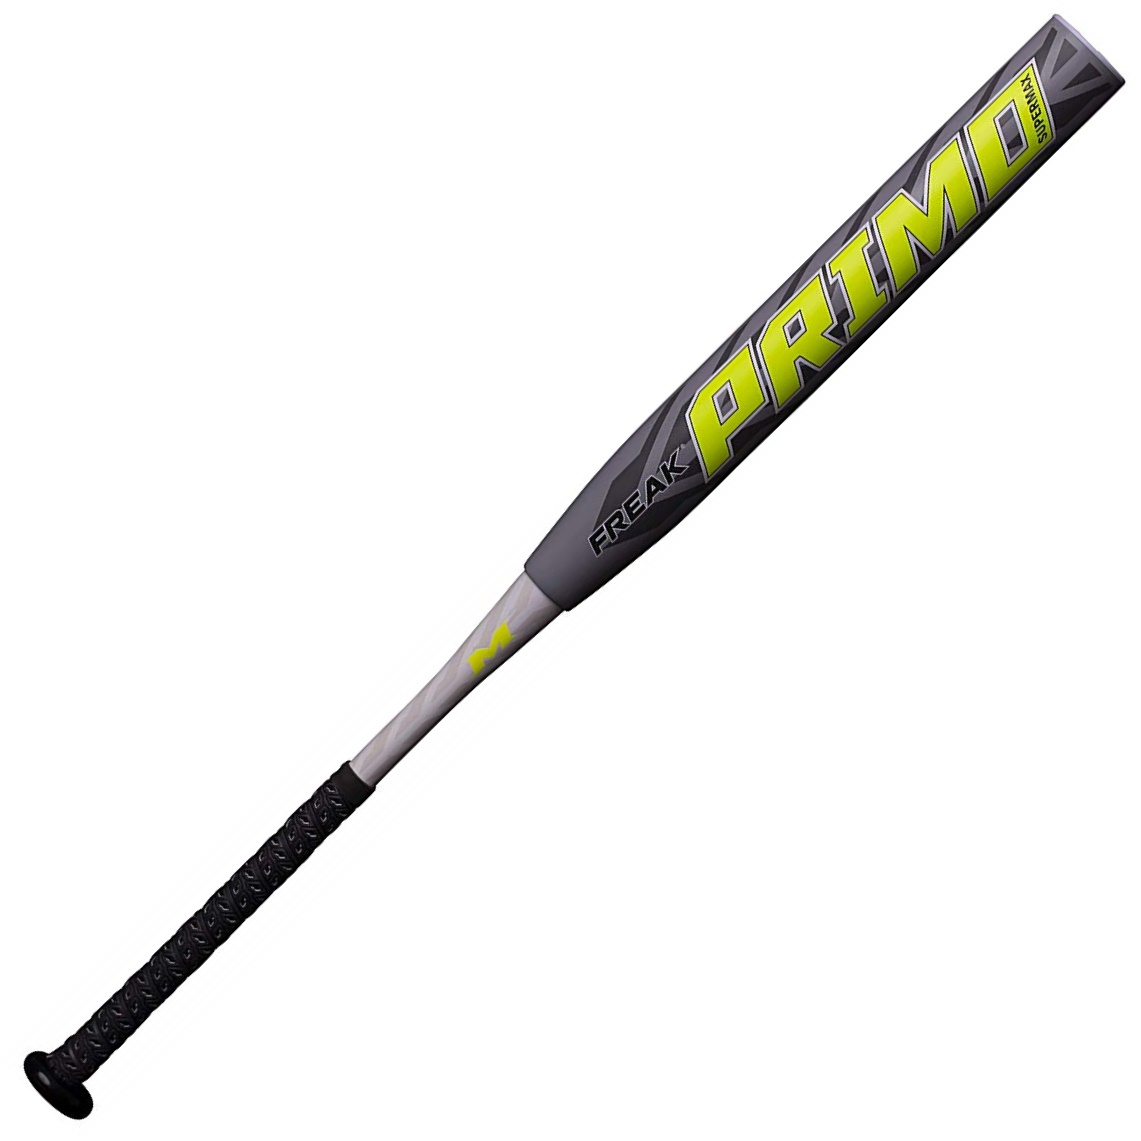 miken-freak-primo-14-inch-supermax-usssa-slowpitch-bat-34-inch-27-oz MPMOSU-3-27 Miken 658925043840 Mikens Triple Matrix Core + Tech increases our exclusive material volume